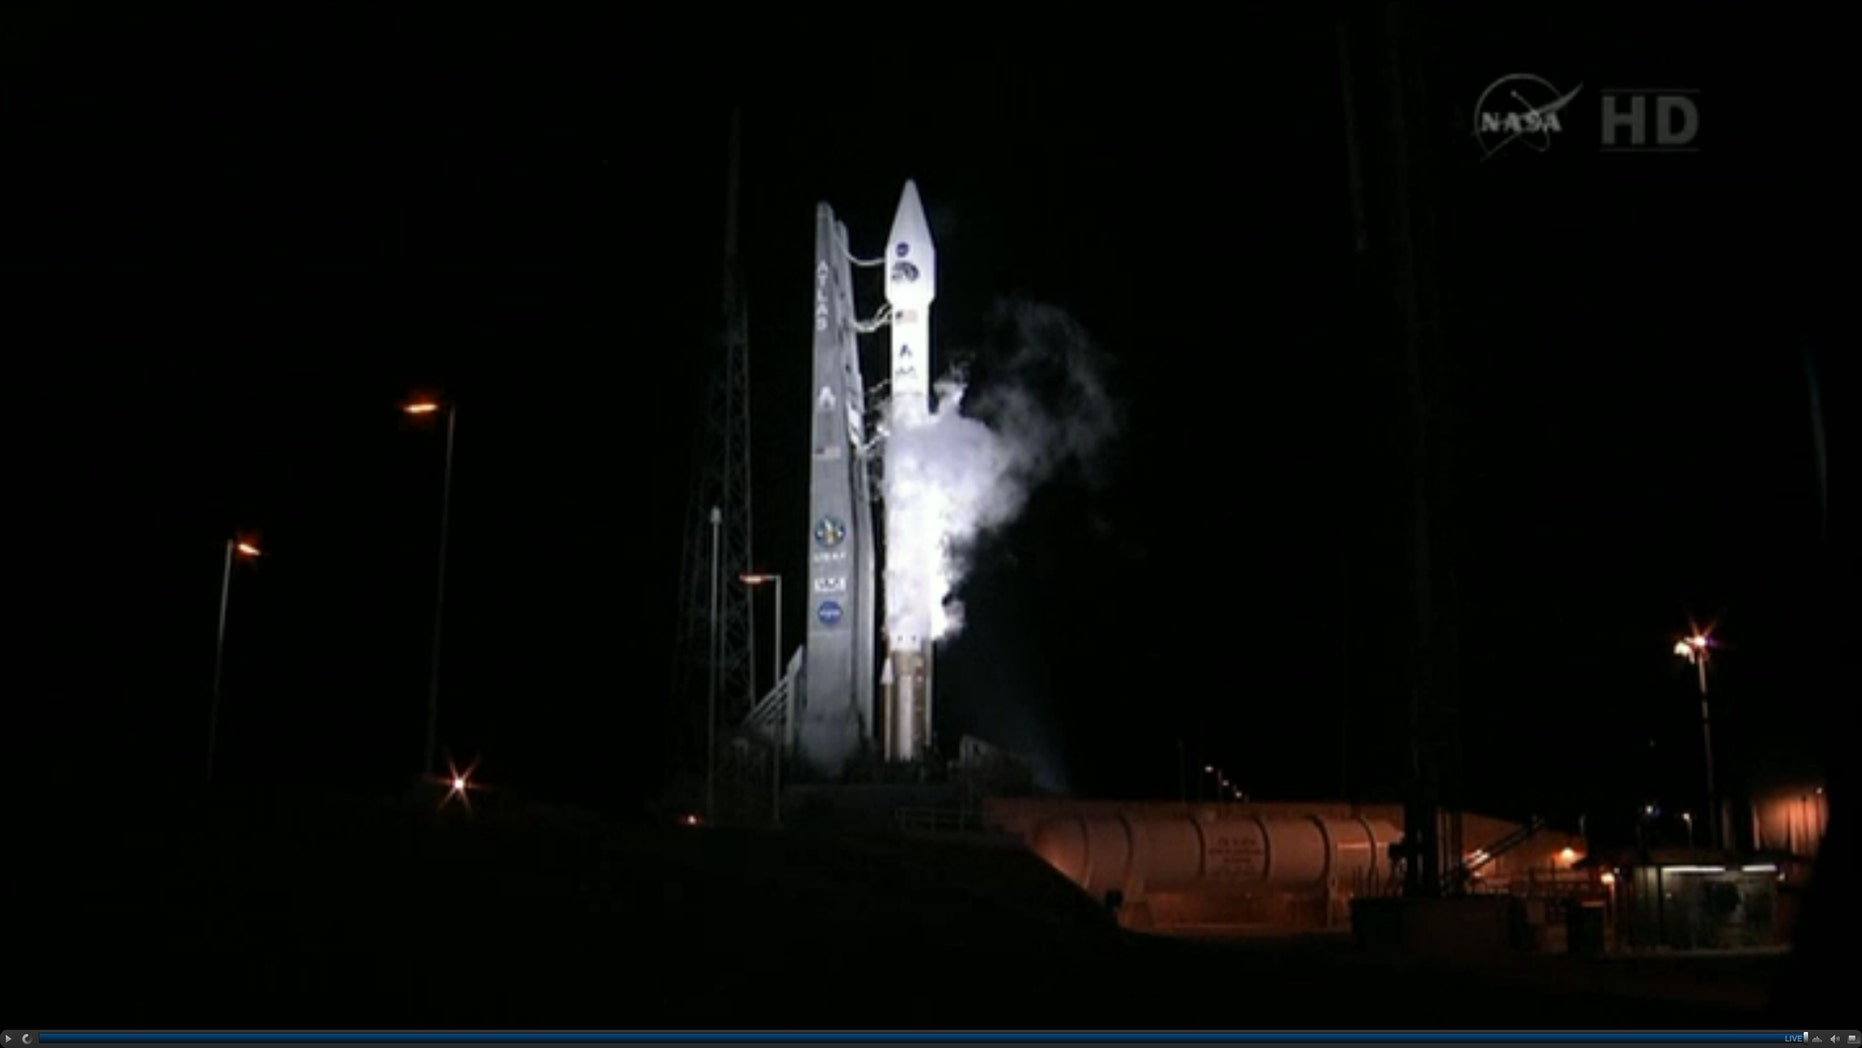 Aug. 24, 2012: This framegrab image provided by NASA-TV shows the Atlas V first stage and Centaur upper stage sitting on the launch pad at Cape Canaveral Air Force Station, Florida just prior to launch.